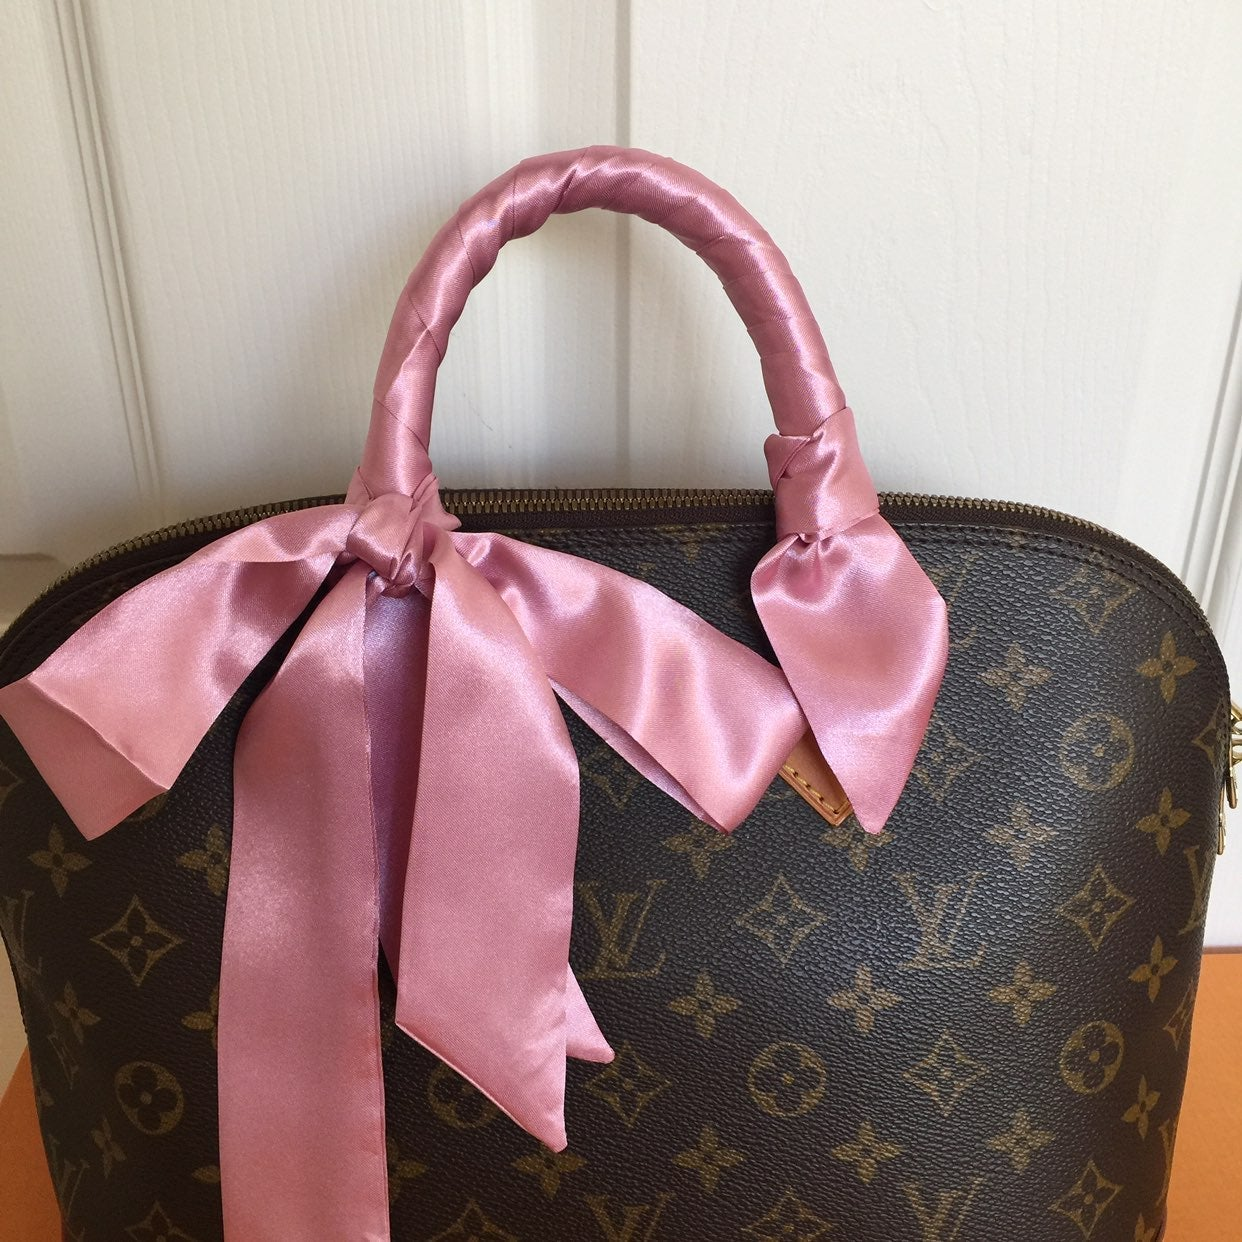 Pink color purse scarf twilly/bag handle